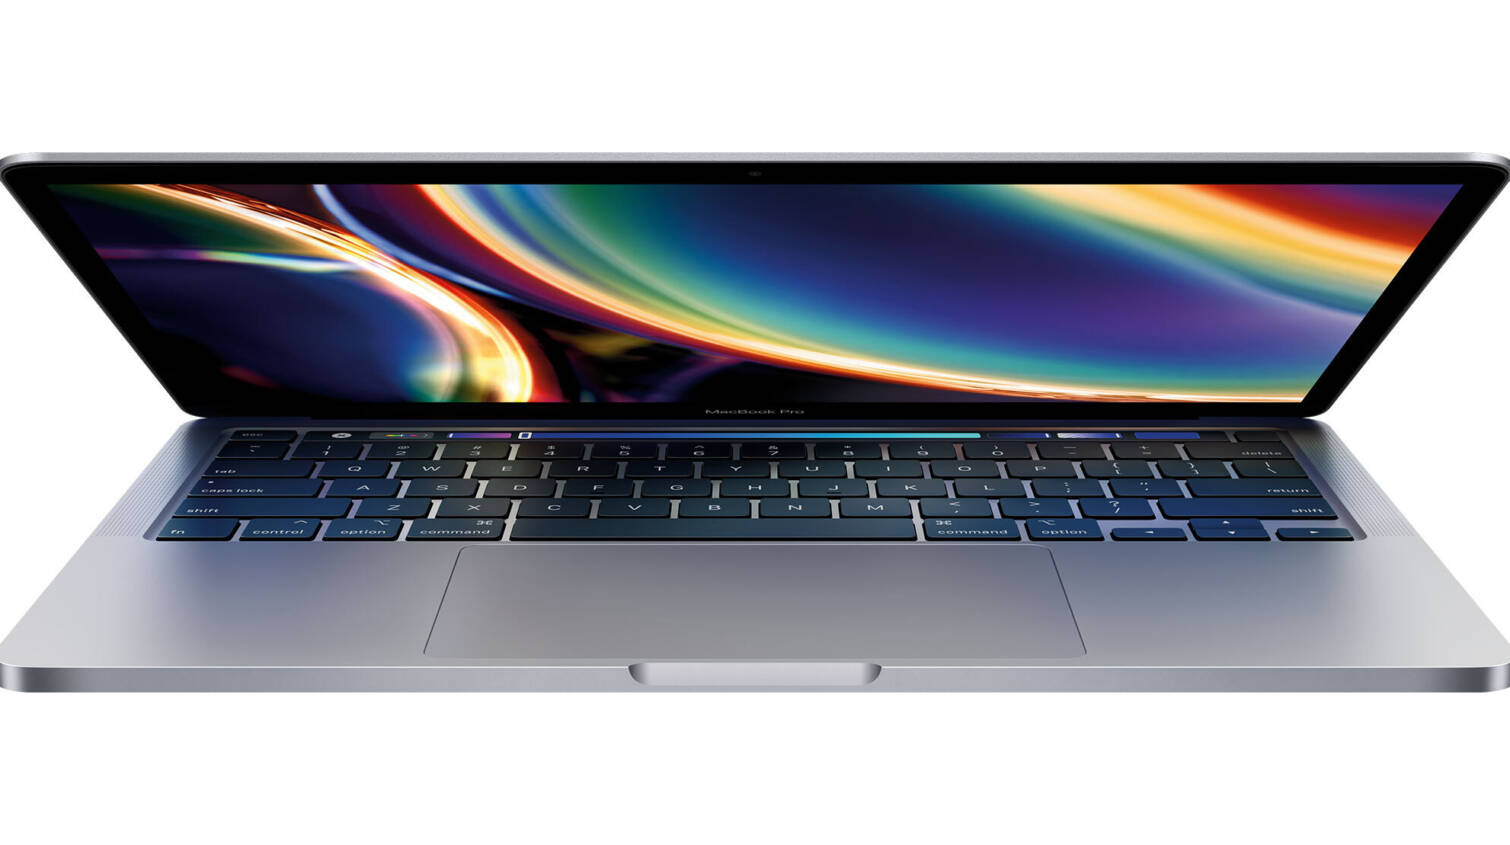 (PR) Apple Updates 13-Inch MacBook Pro with Magic Keyboard, Double the Storage, and Faster Performance